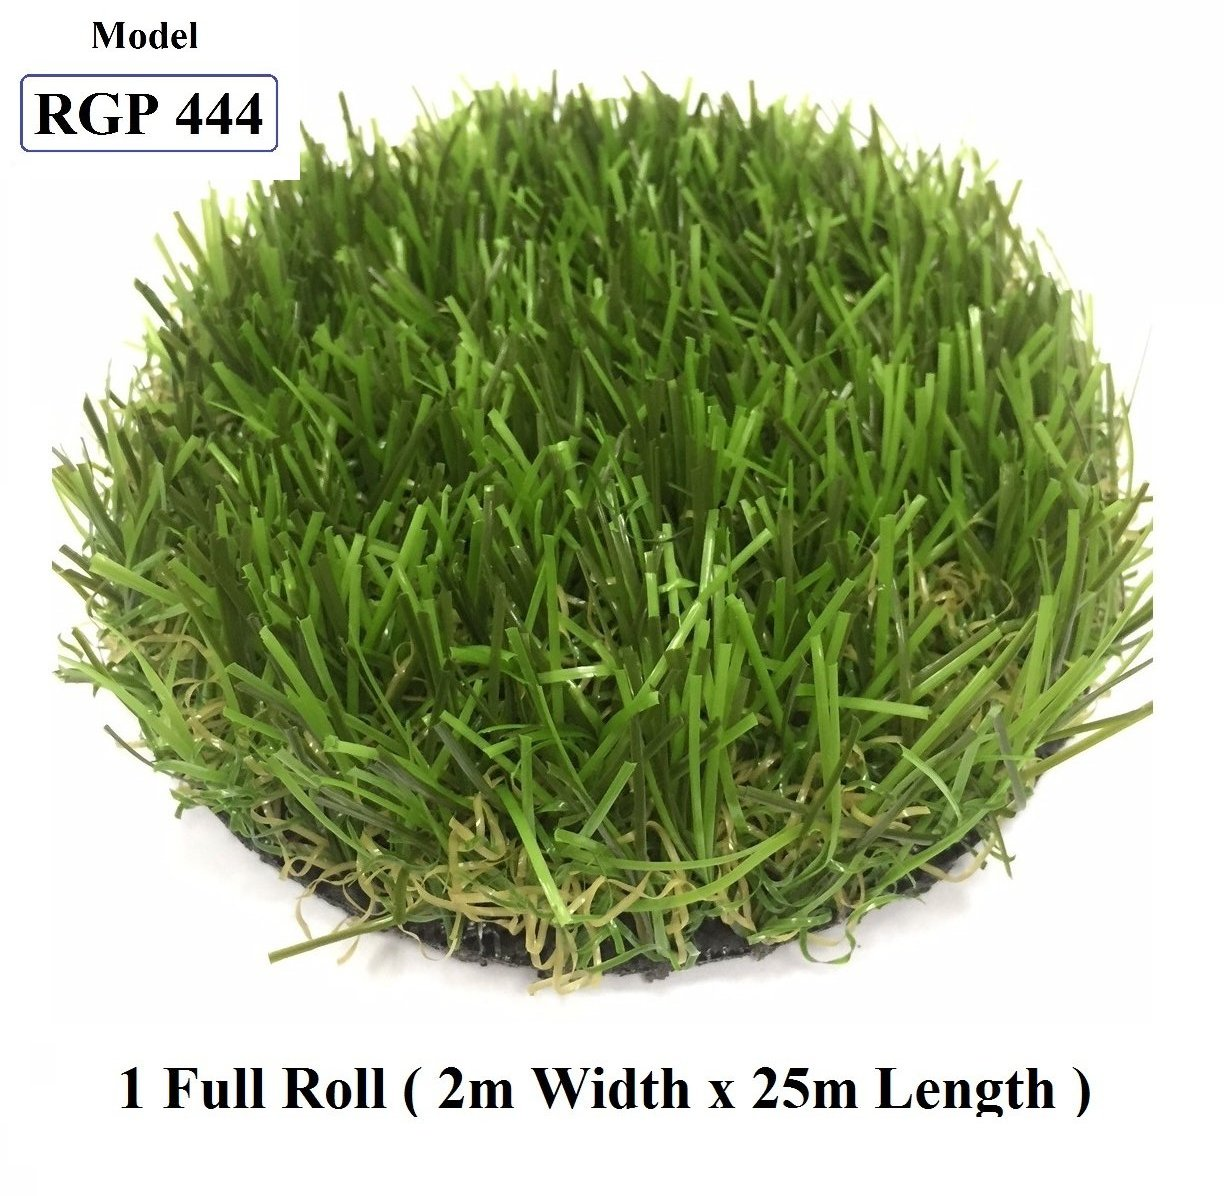 ResiGrass Artificial Grass RGP444 - 36mm - 2m (W) x 25m (L), SmartGardenCenter.com